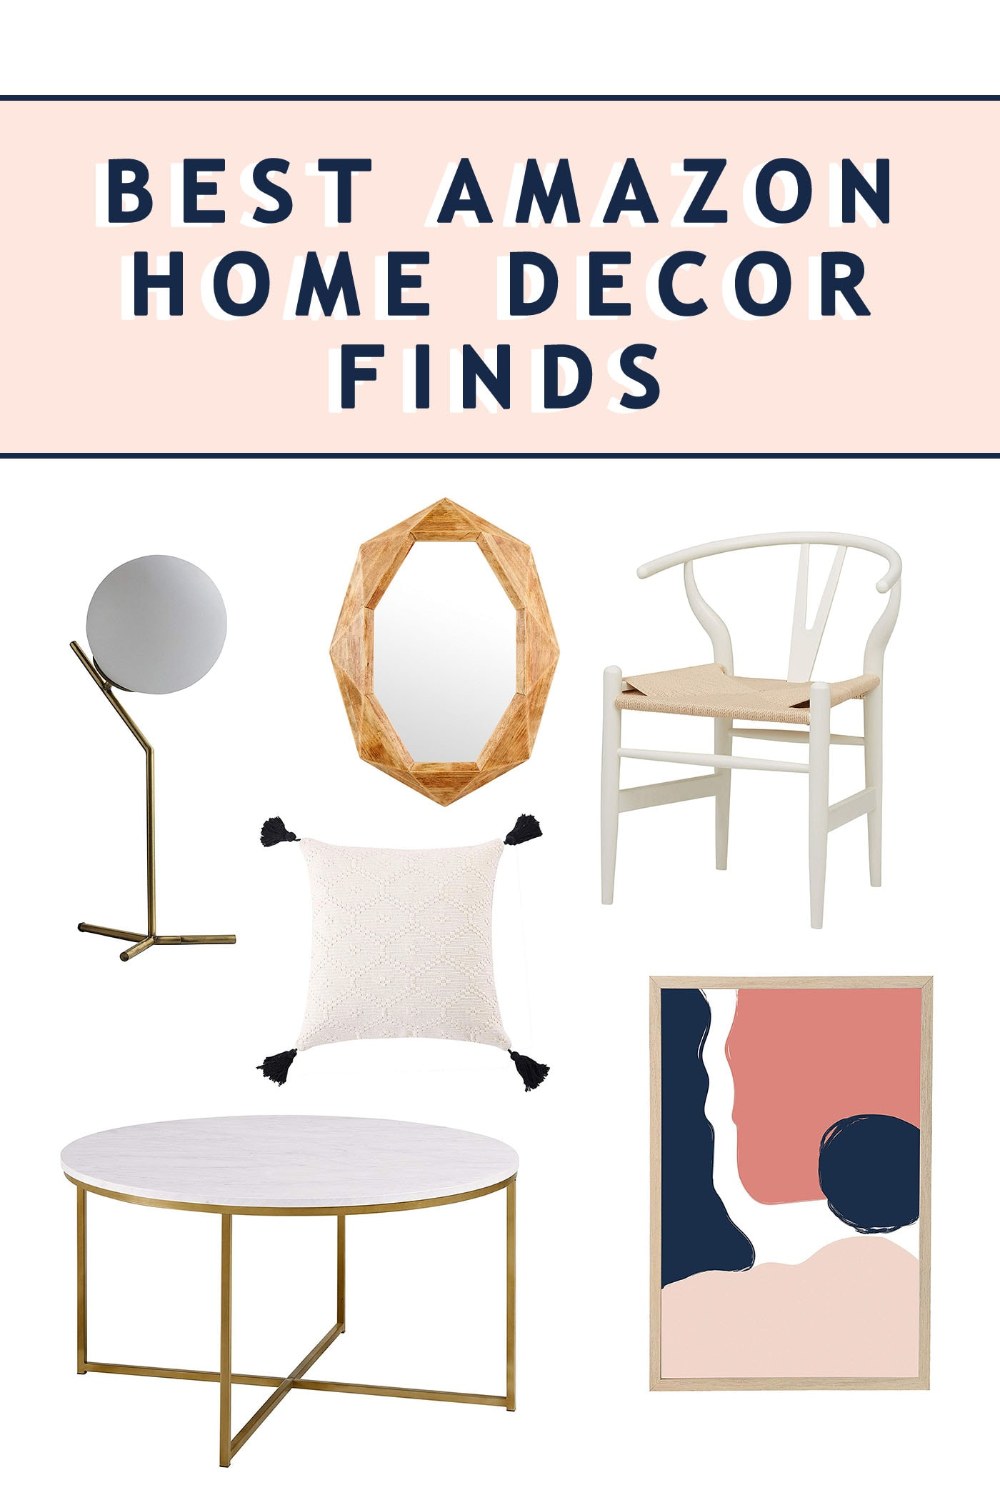 Amazon Home Decor: Our Favorite Amazon Furniture Finds - #amazonhomedecor